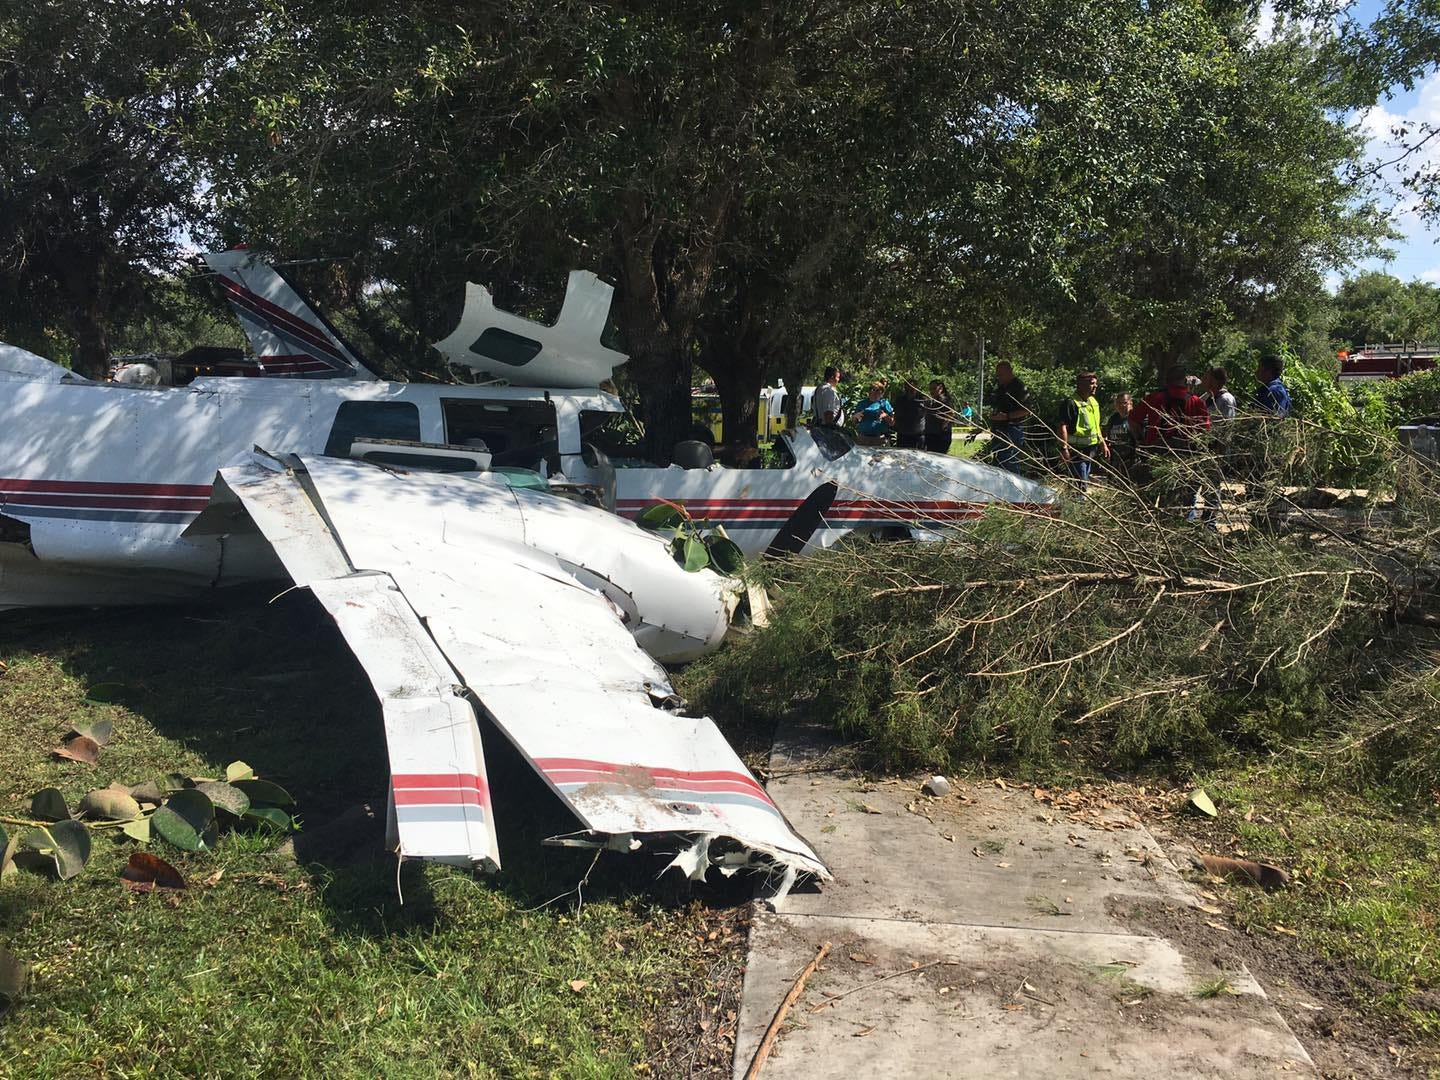 FAA investigating LaBelle plane crash that killed one person, injured another 2